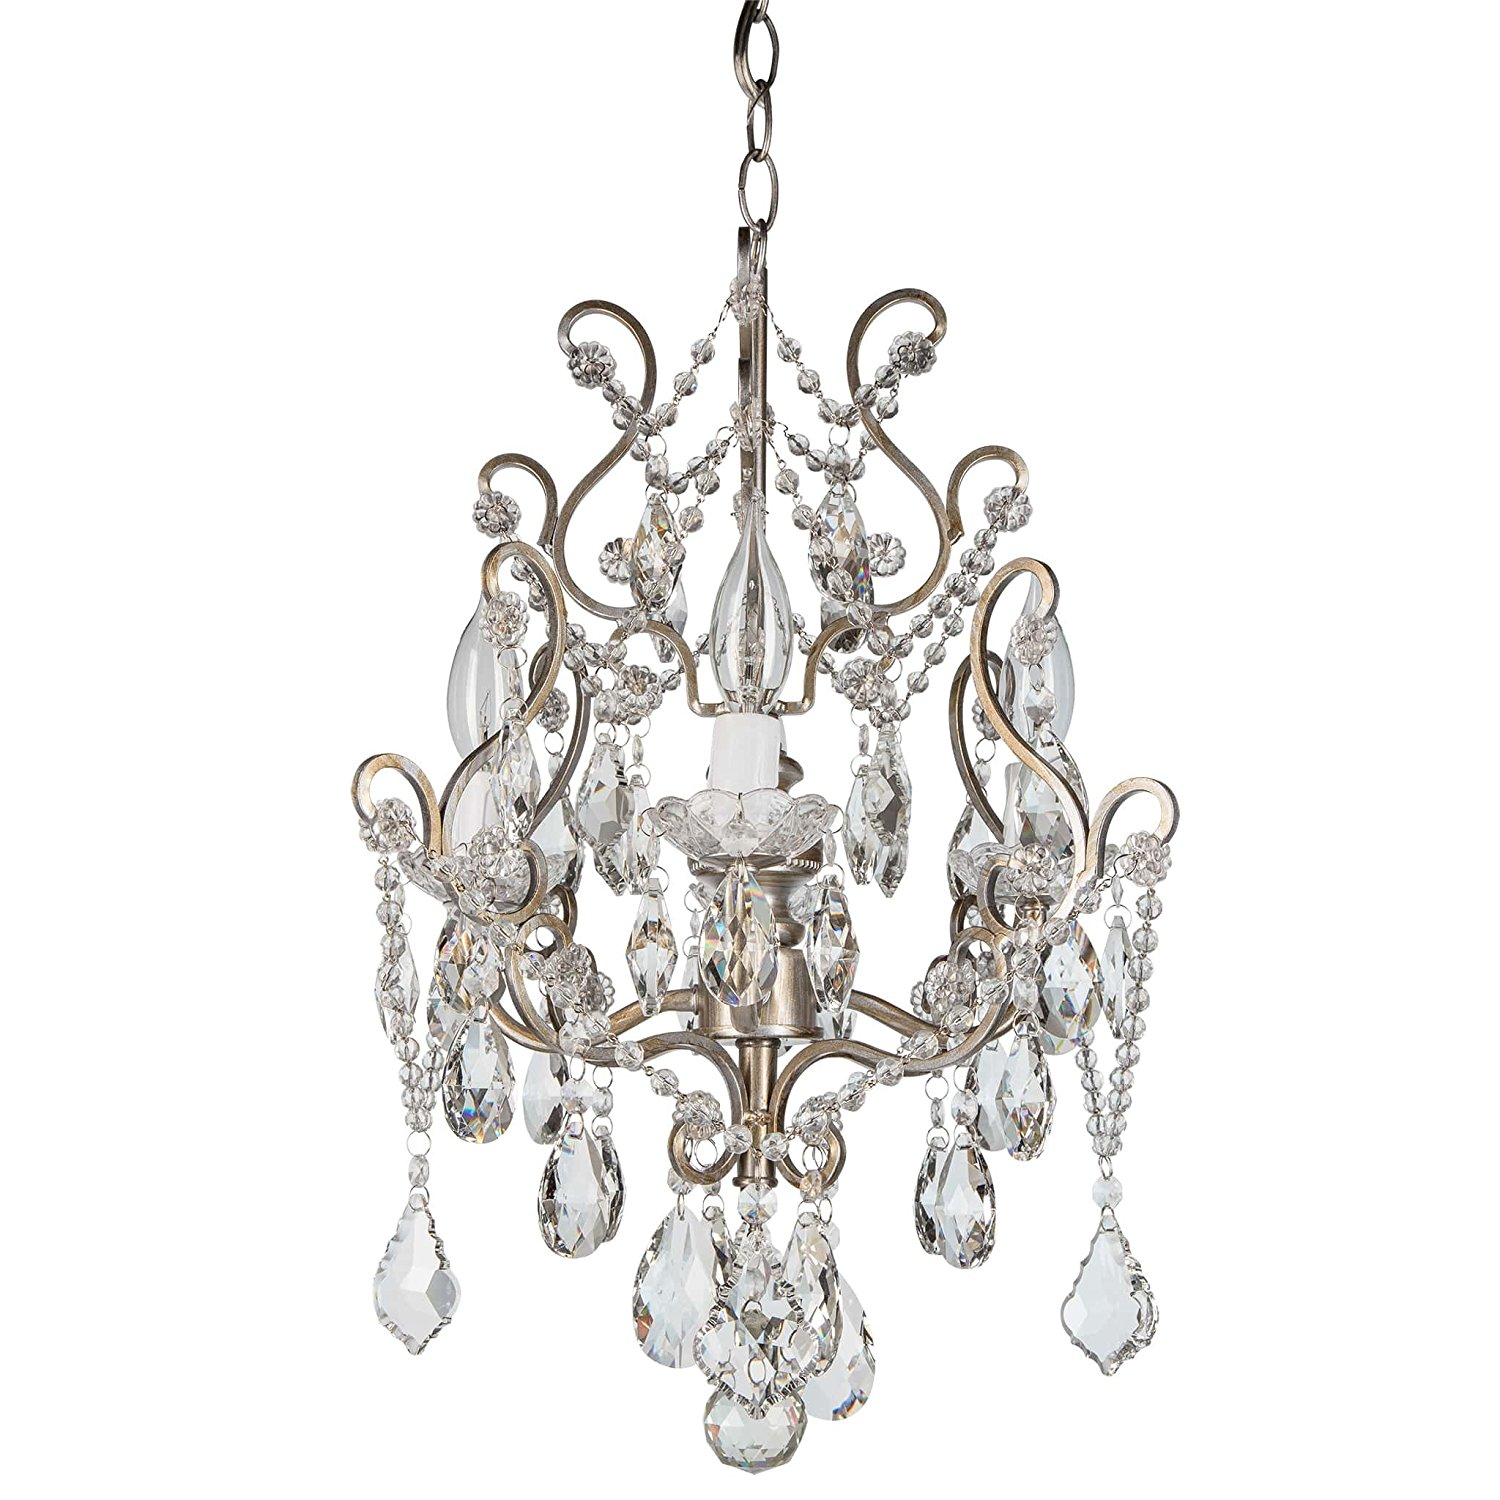 Rustic Shabby Chic Chandeliers A Guide To The Best Of 2018